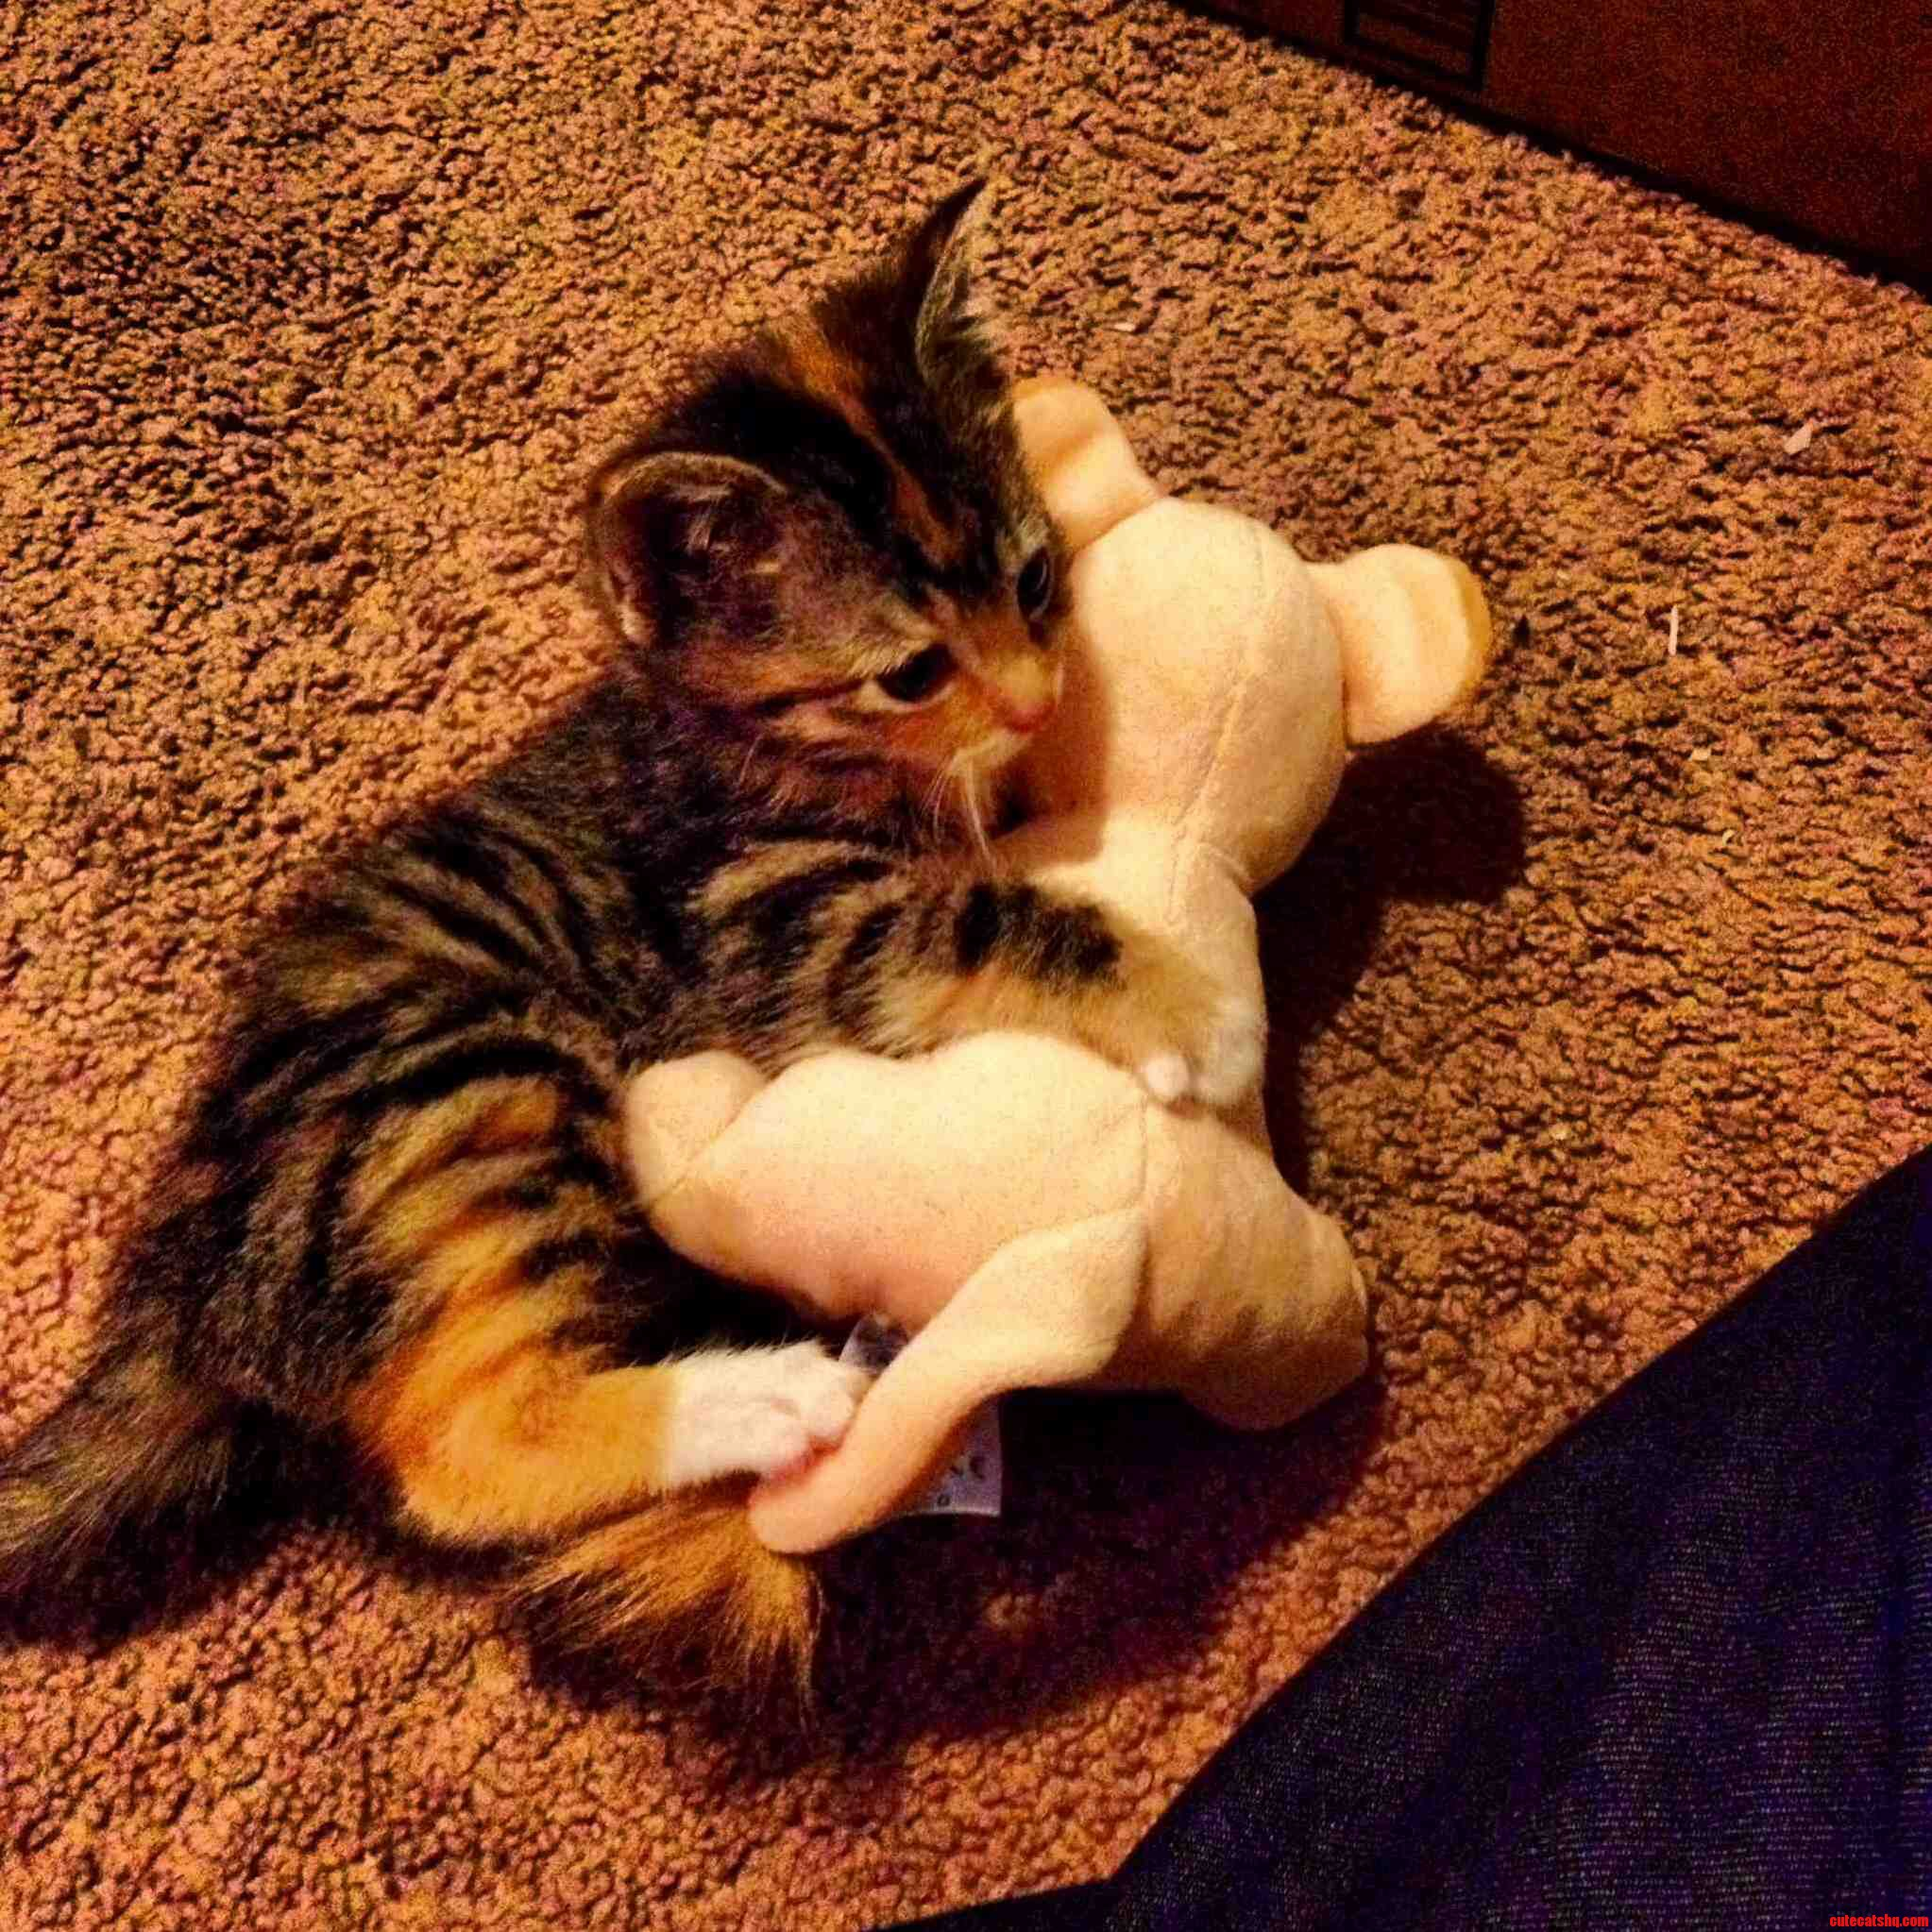 So I Got My Cat Nala A Stuffed Animal Nala And She Is Obsessed With It